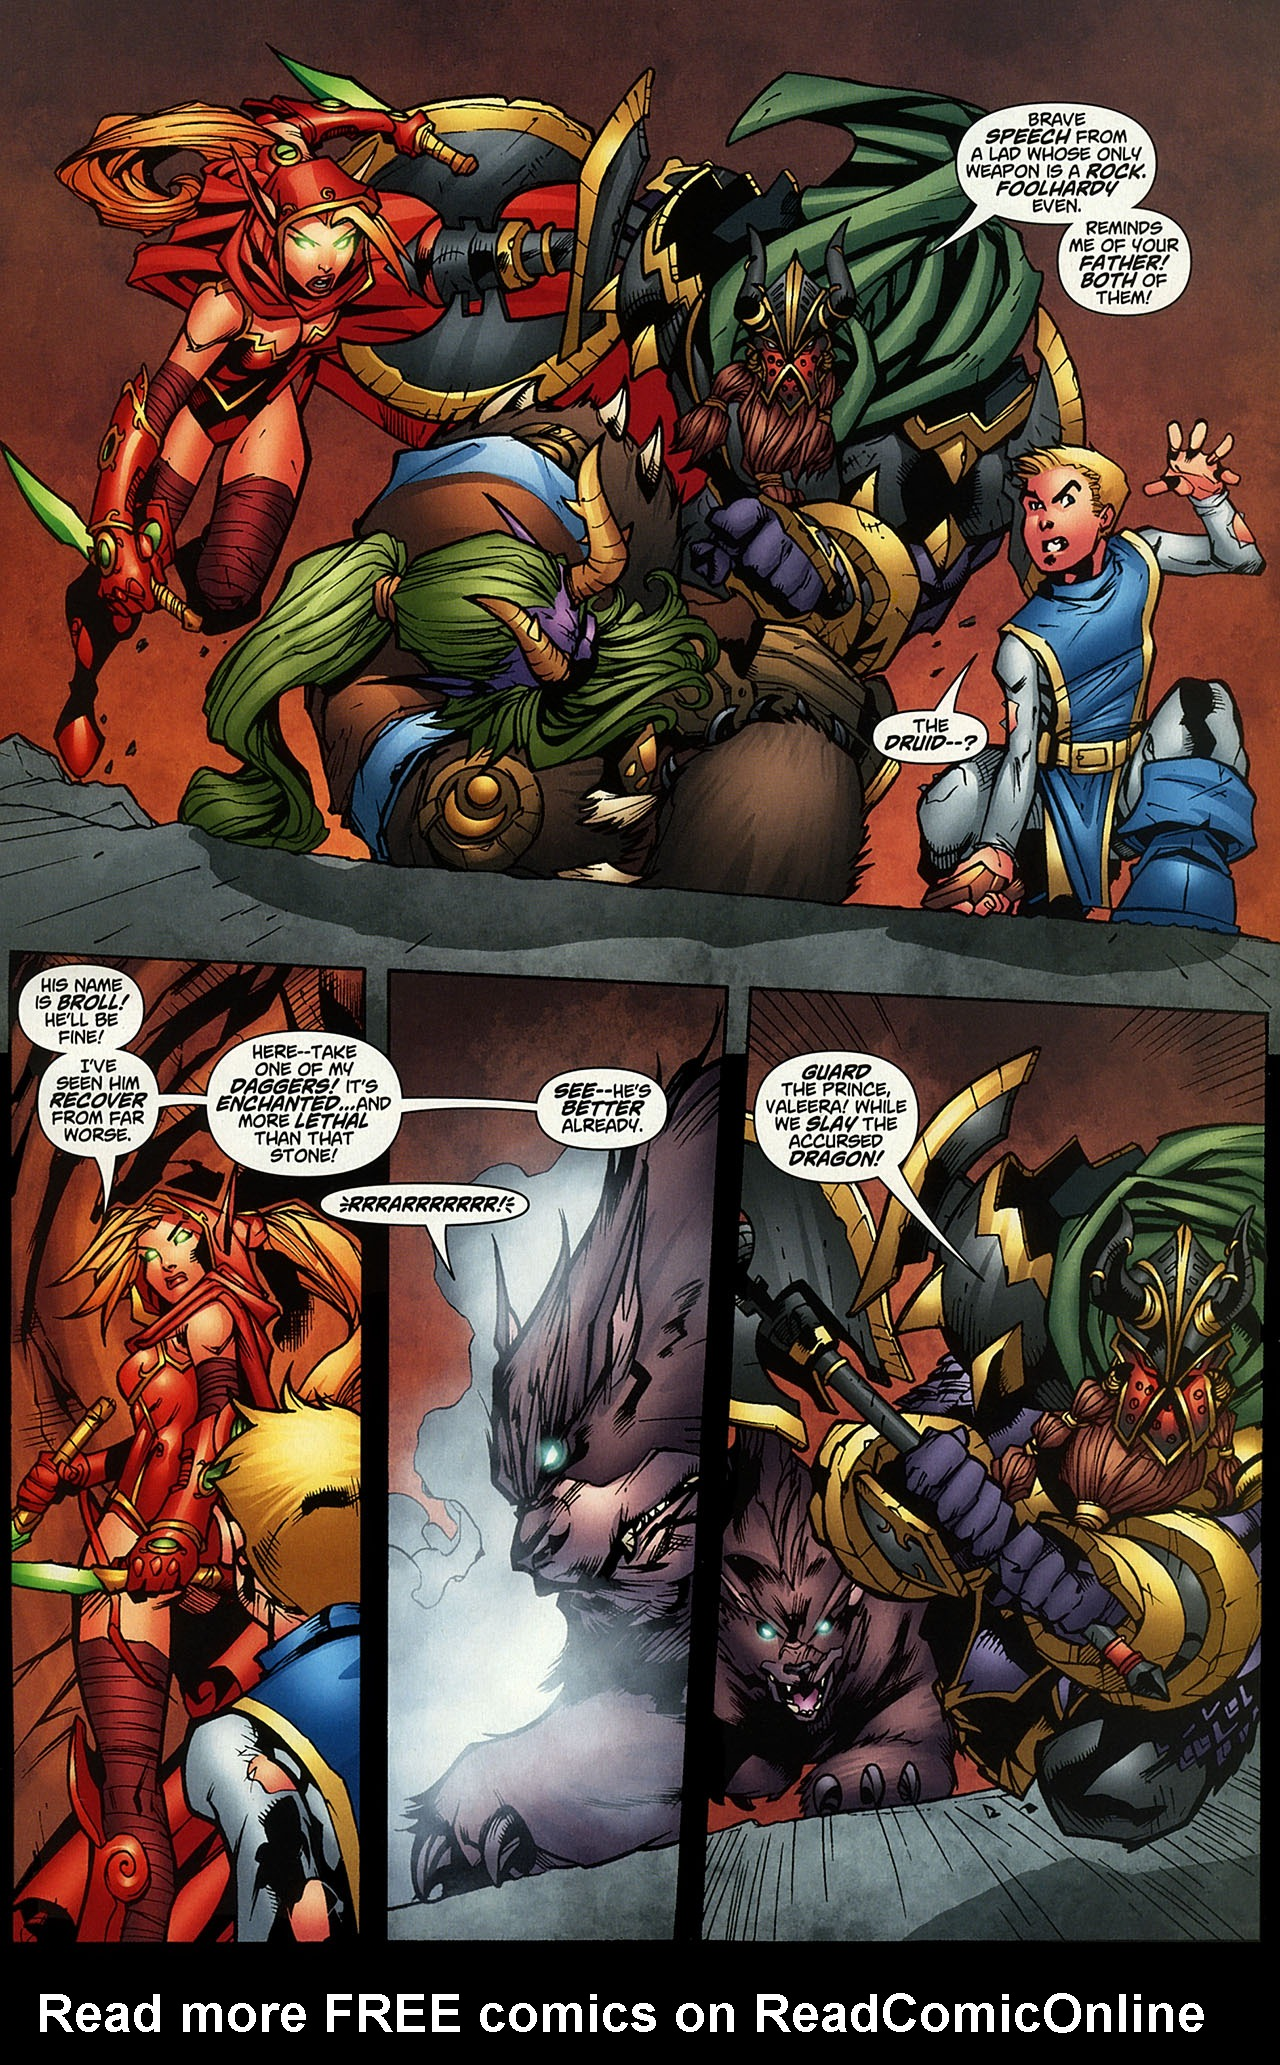 Read online World of Warcraft comic -  Issue #14 - 12